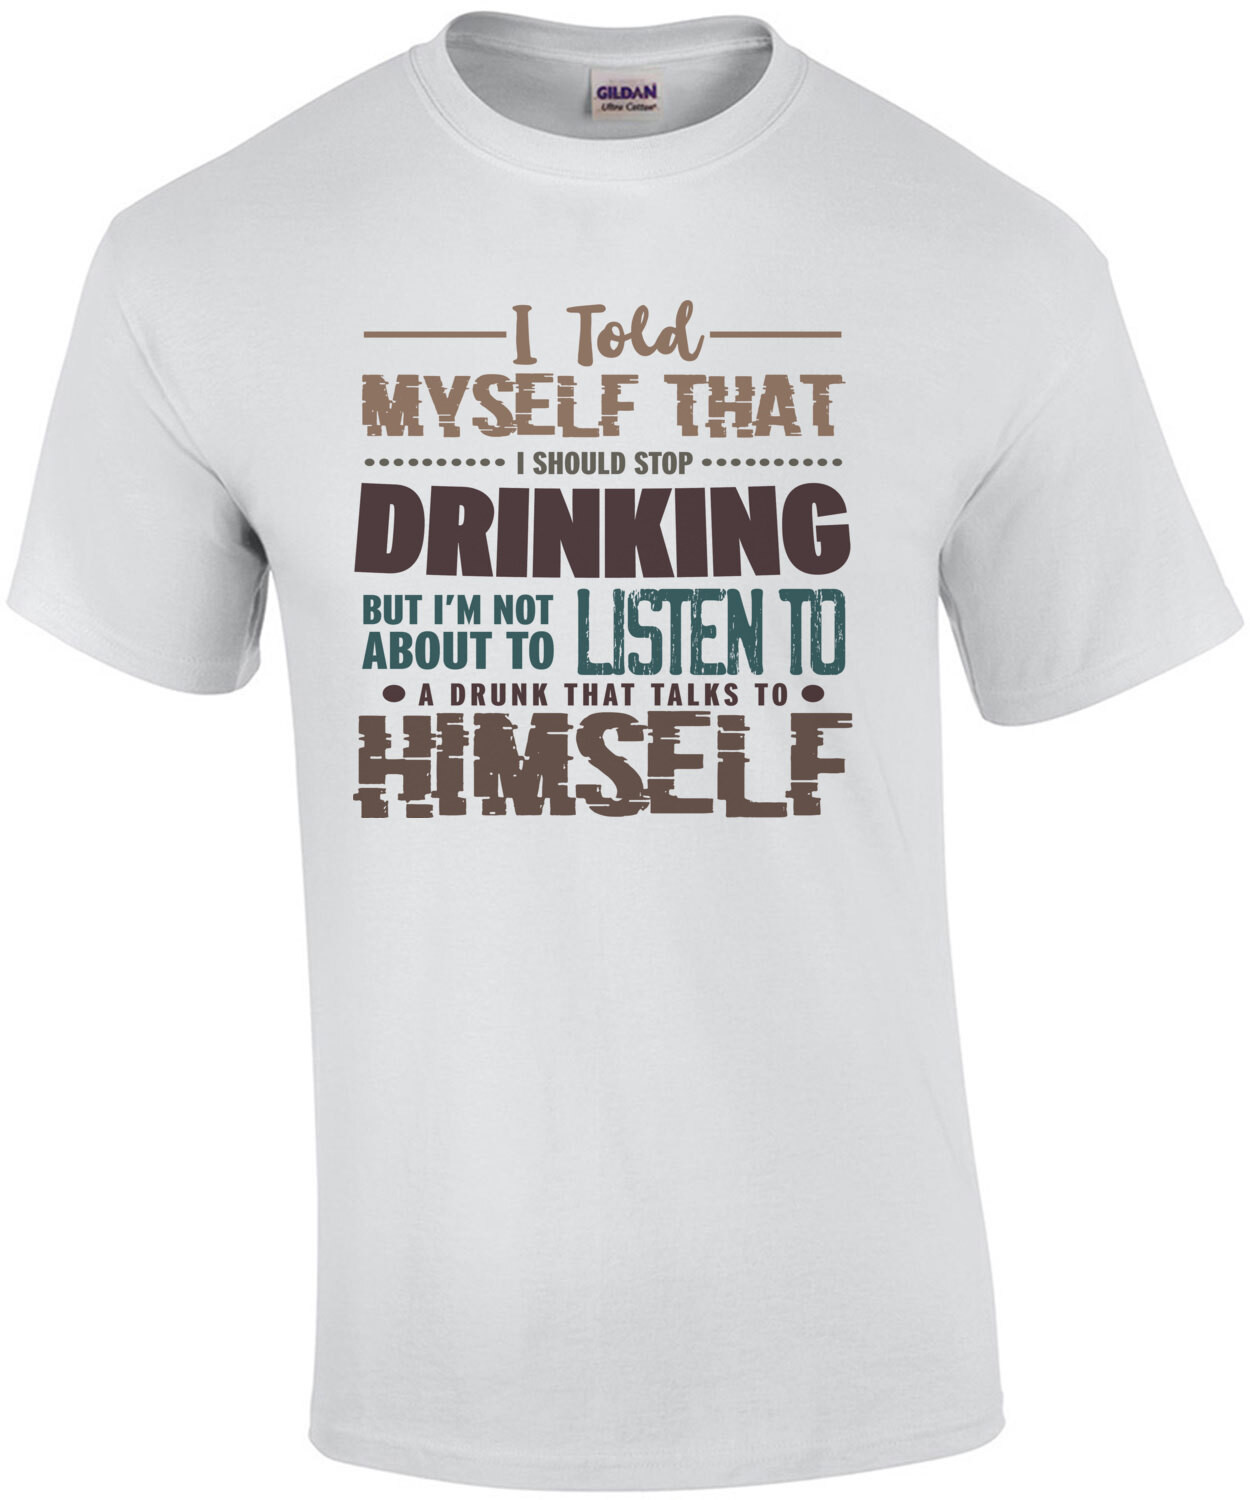 I told myself that I should stop drinking but I'm not about to listen to a drunk that talks to himself - funny drinking t-shirt